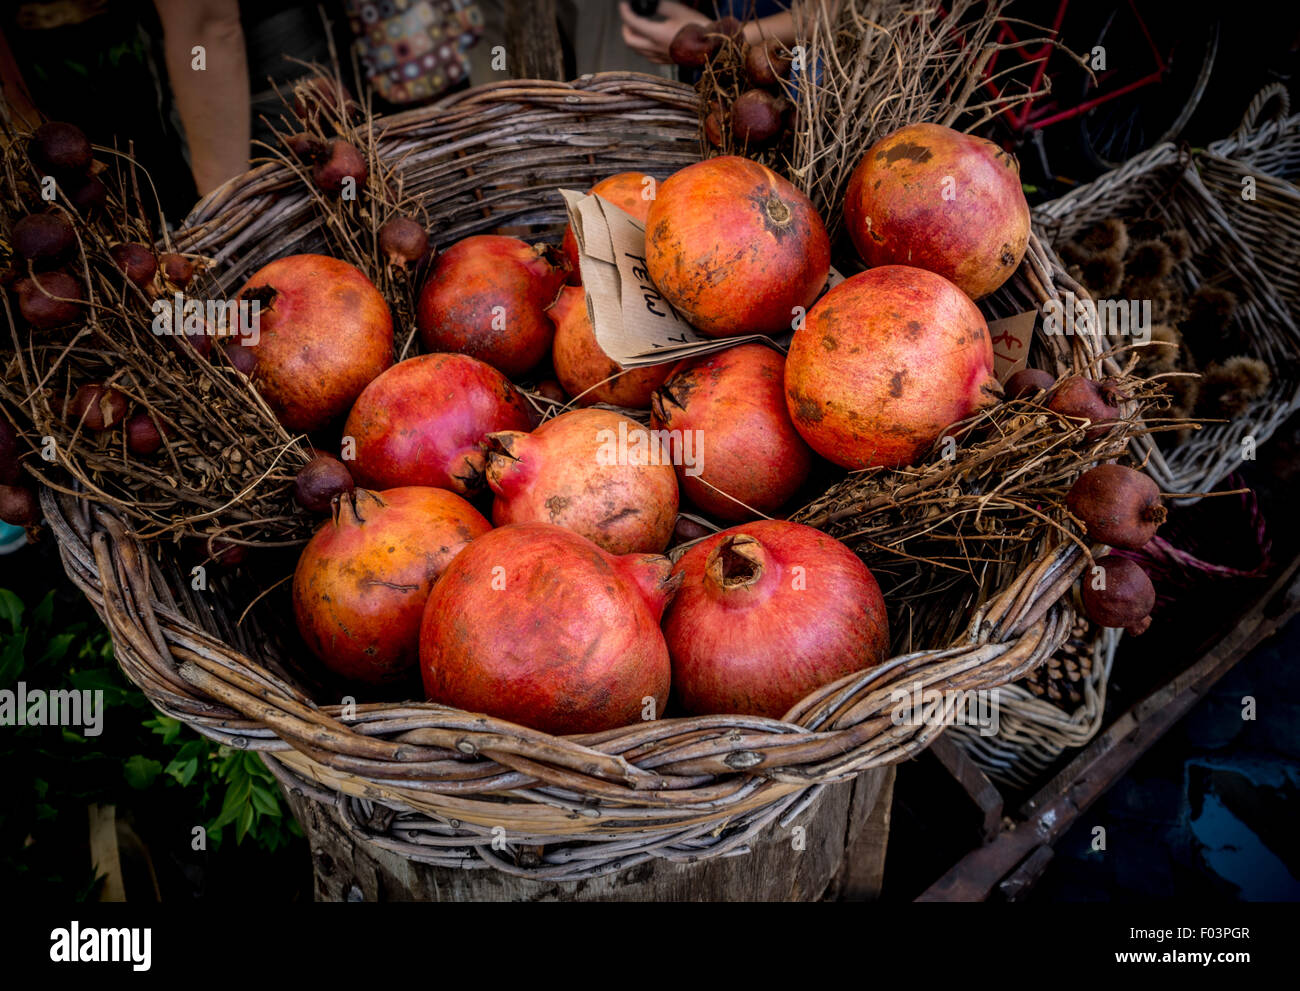 Basket of fresh pomegranates at Campo de' Fiori outdoor food market in Rome., Italy. - Stock Image